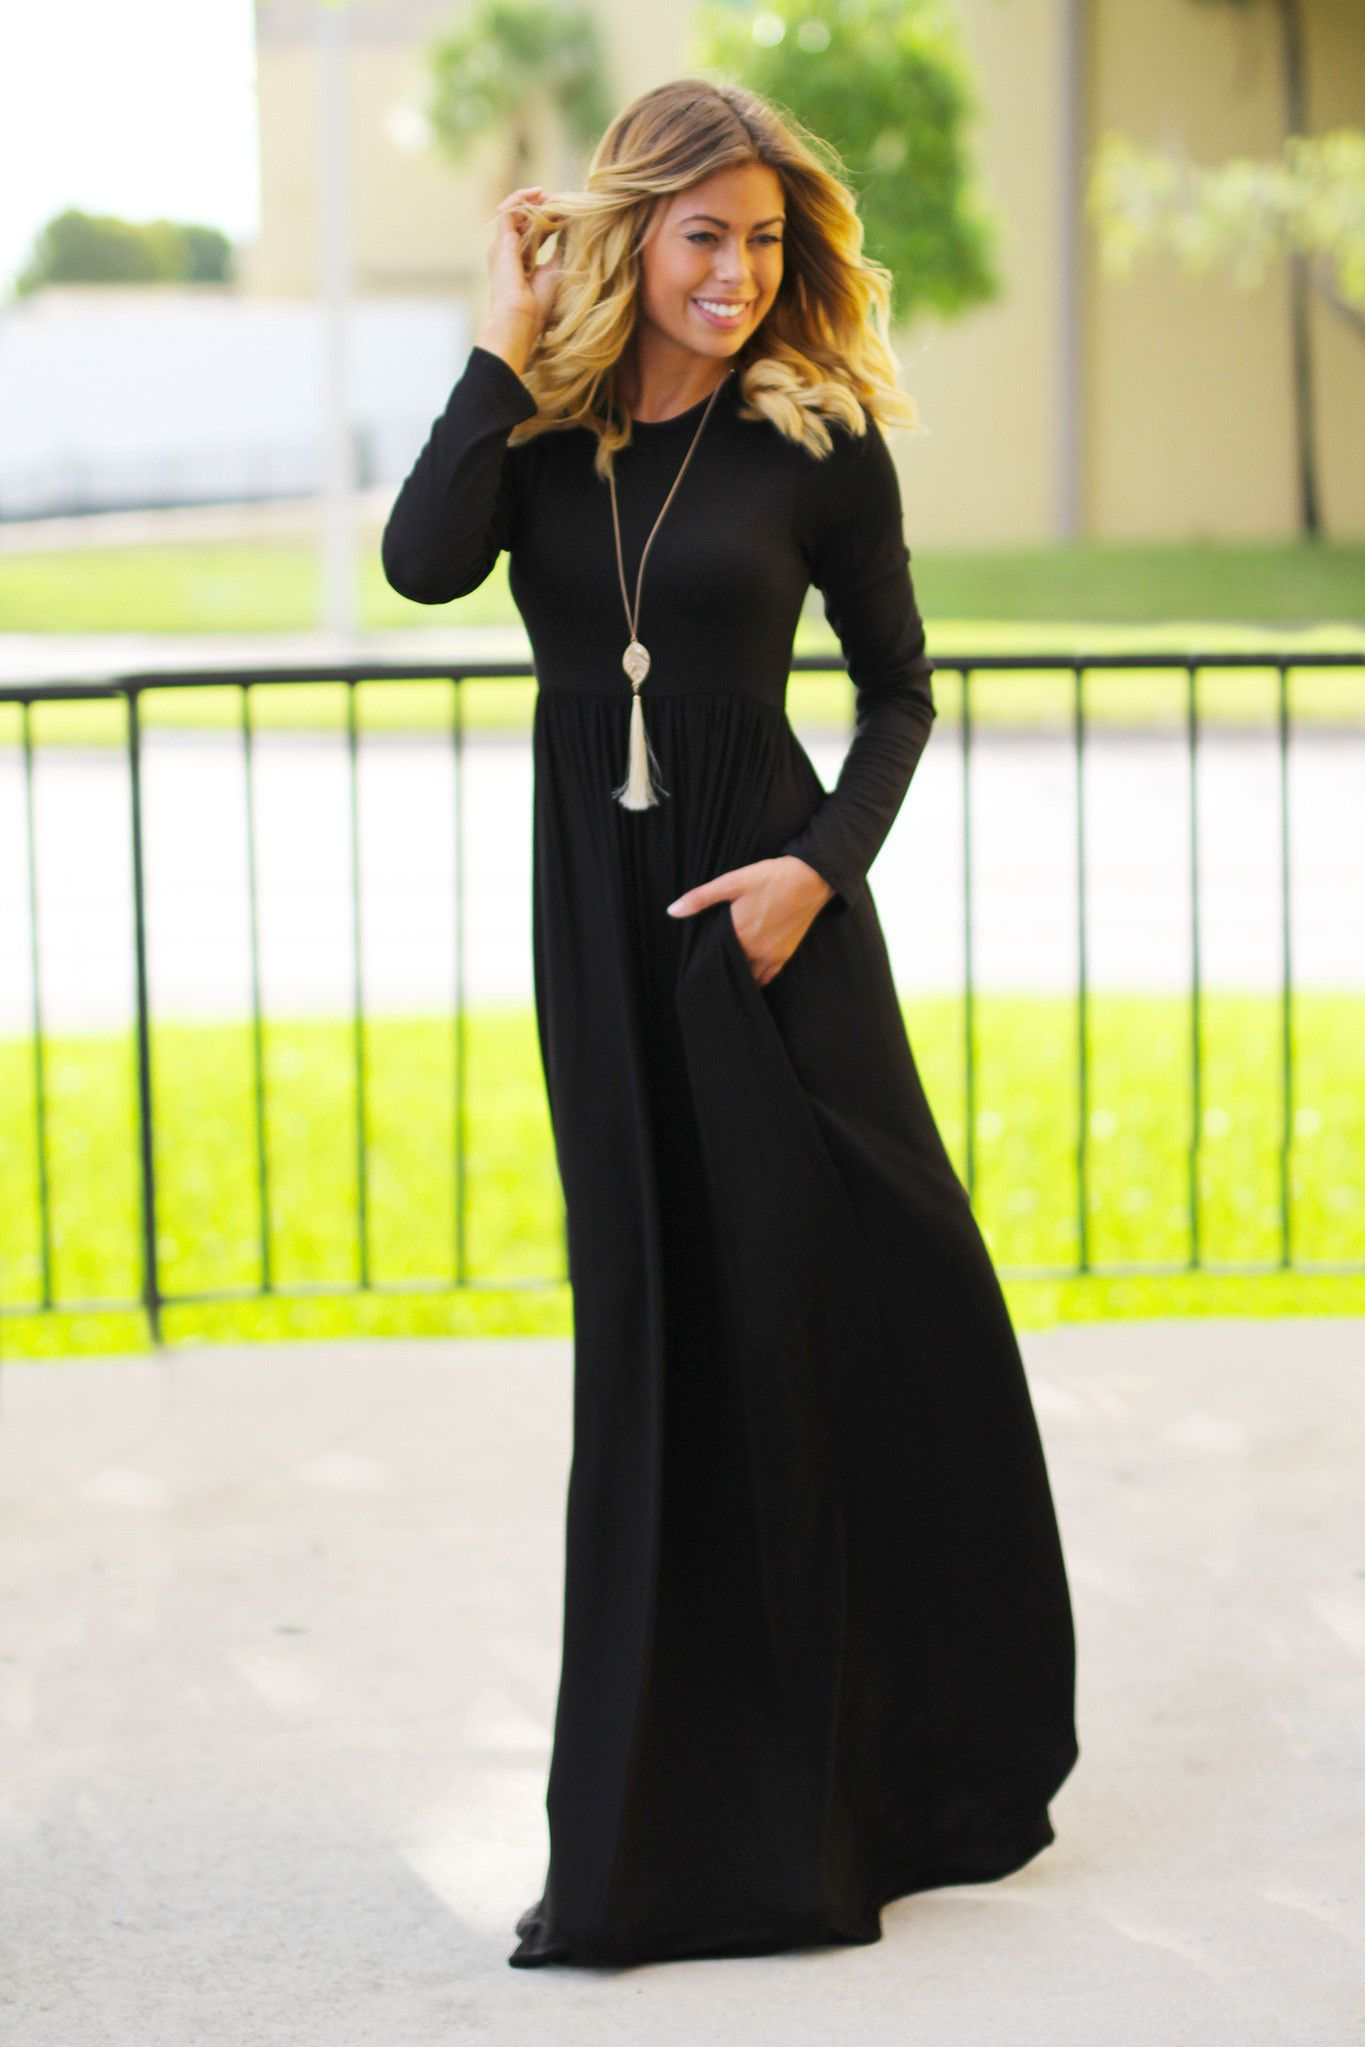 Long Sleeve Black Maxi Dress with Pockets My Style Pinterest